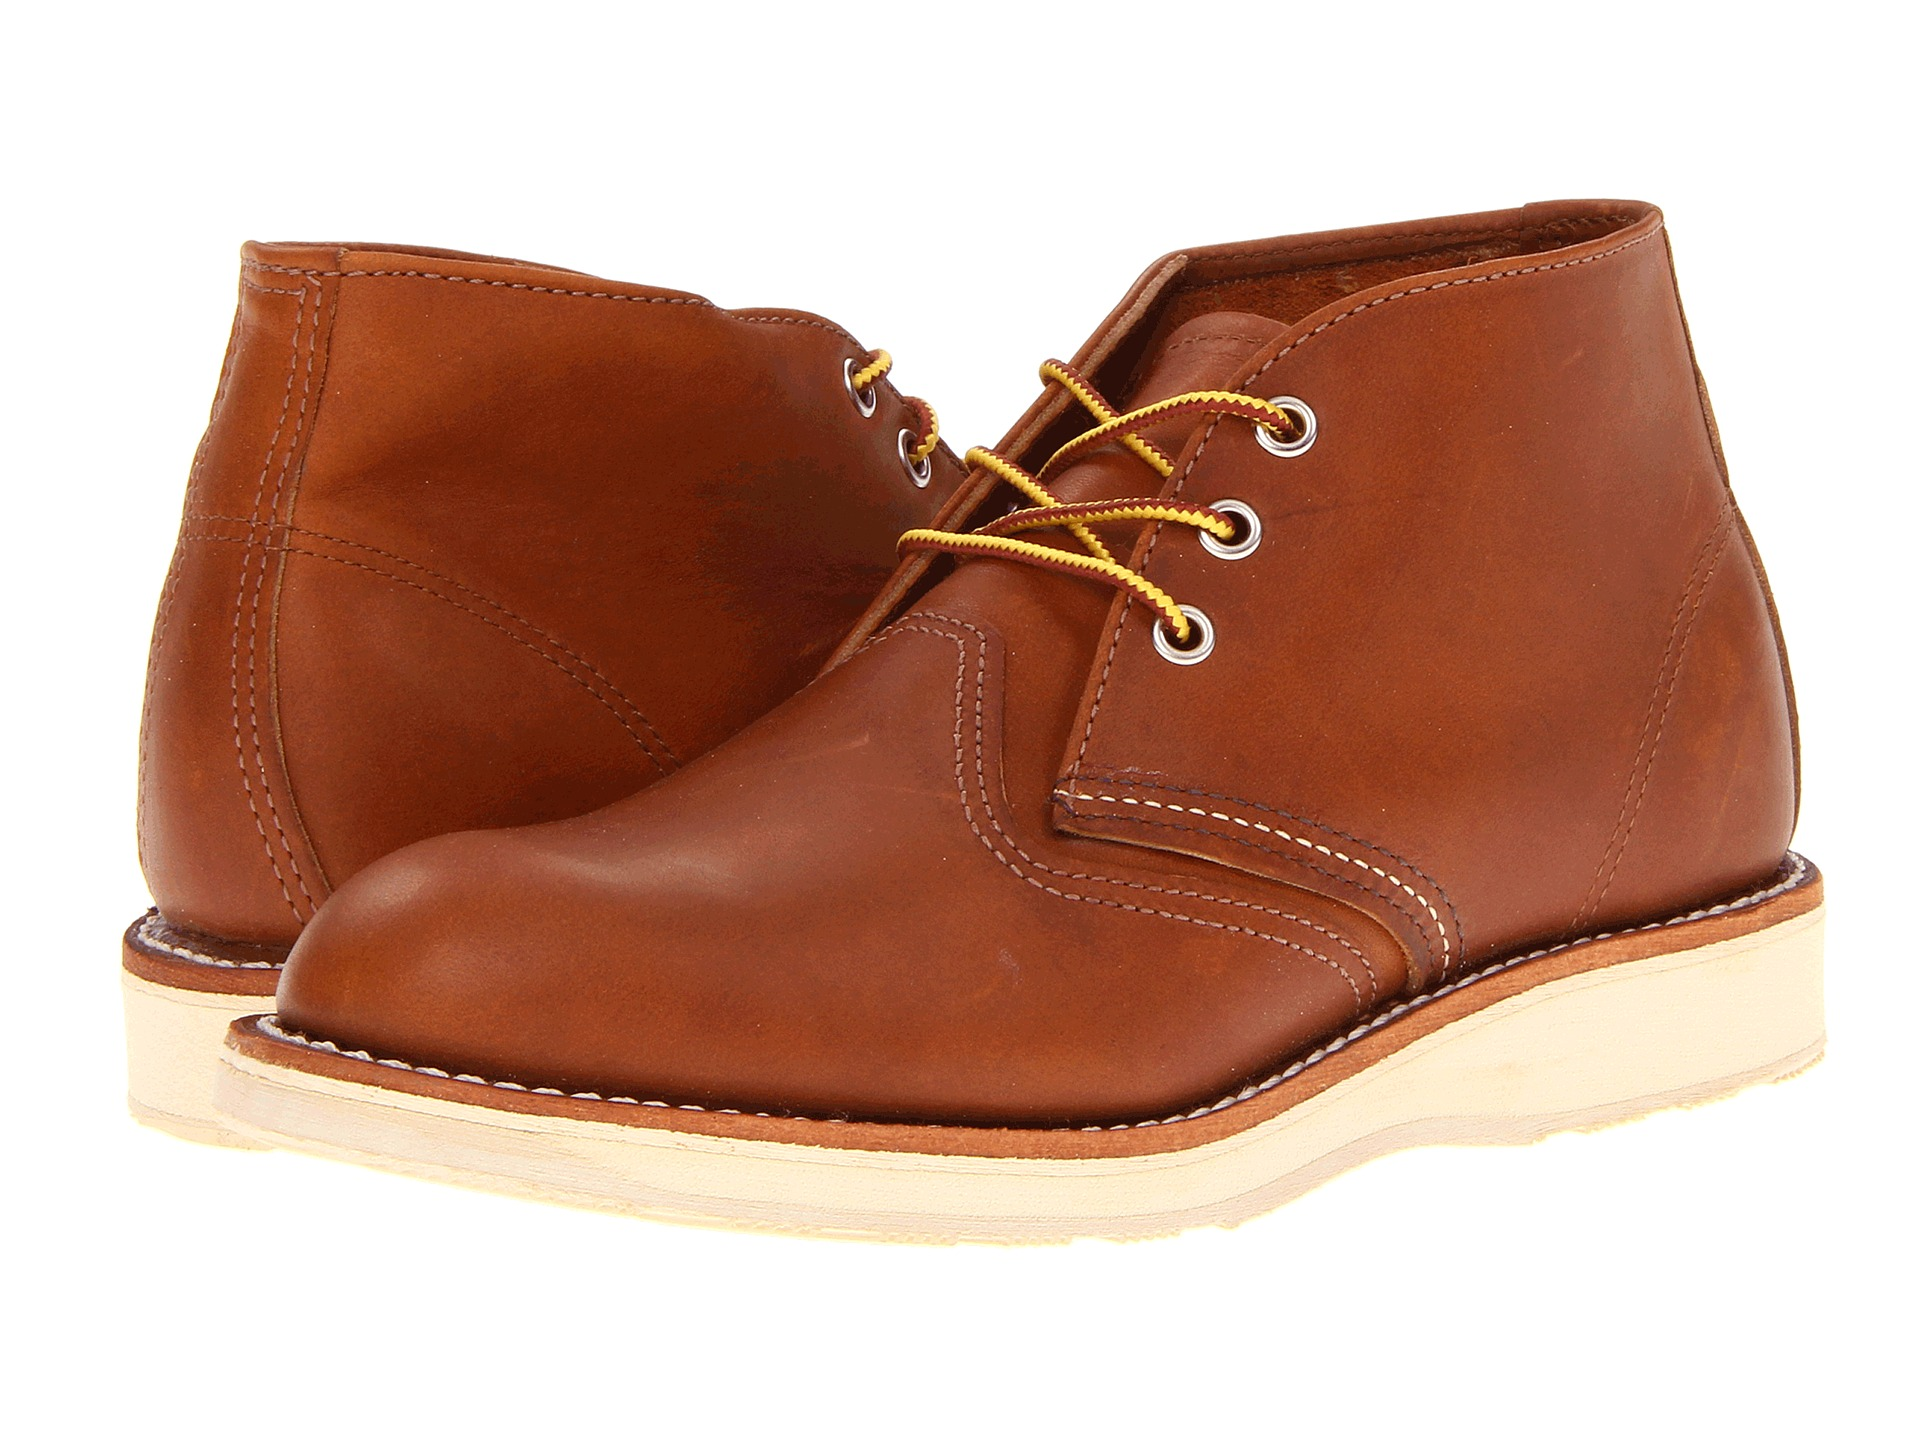 Red Wing Heritage Work Chukka at Zappos.com